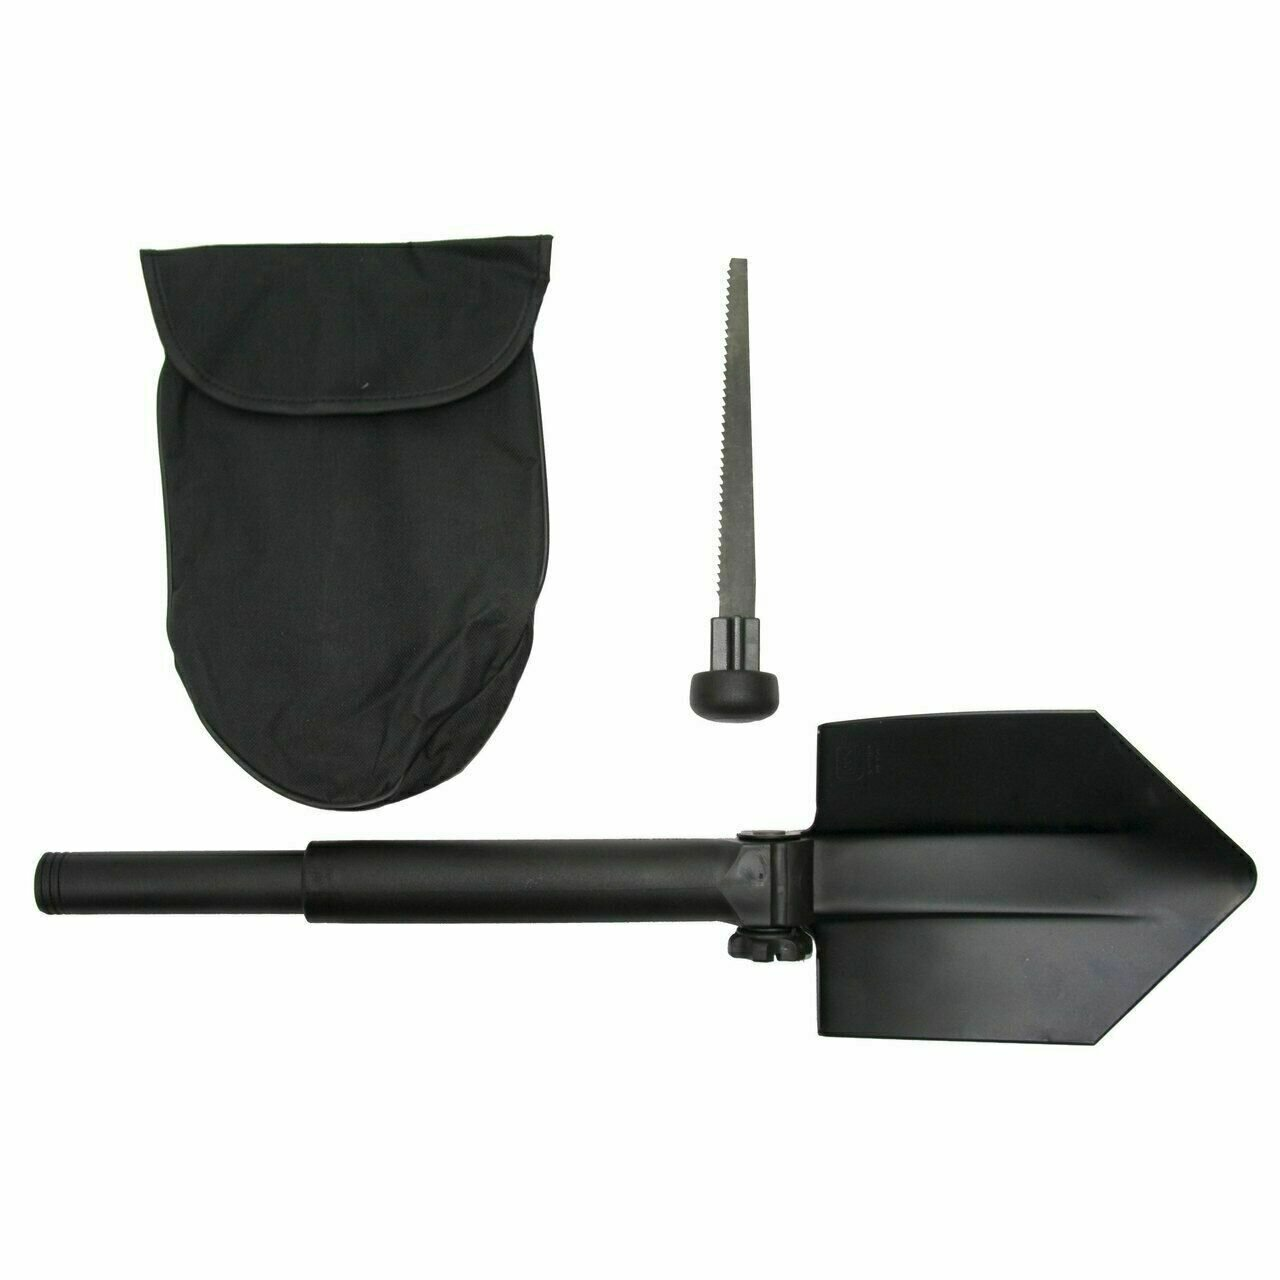 GLOCK ENTRENCH TOOL W/POUCH